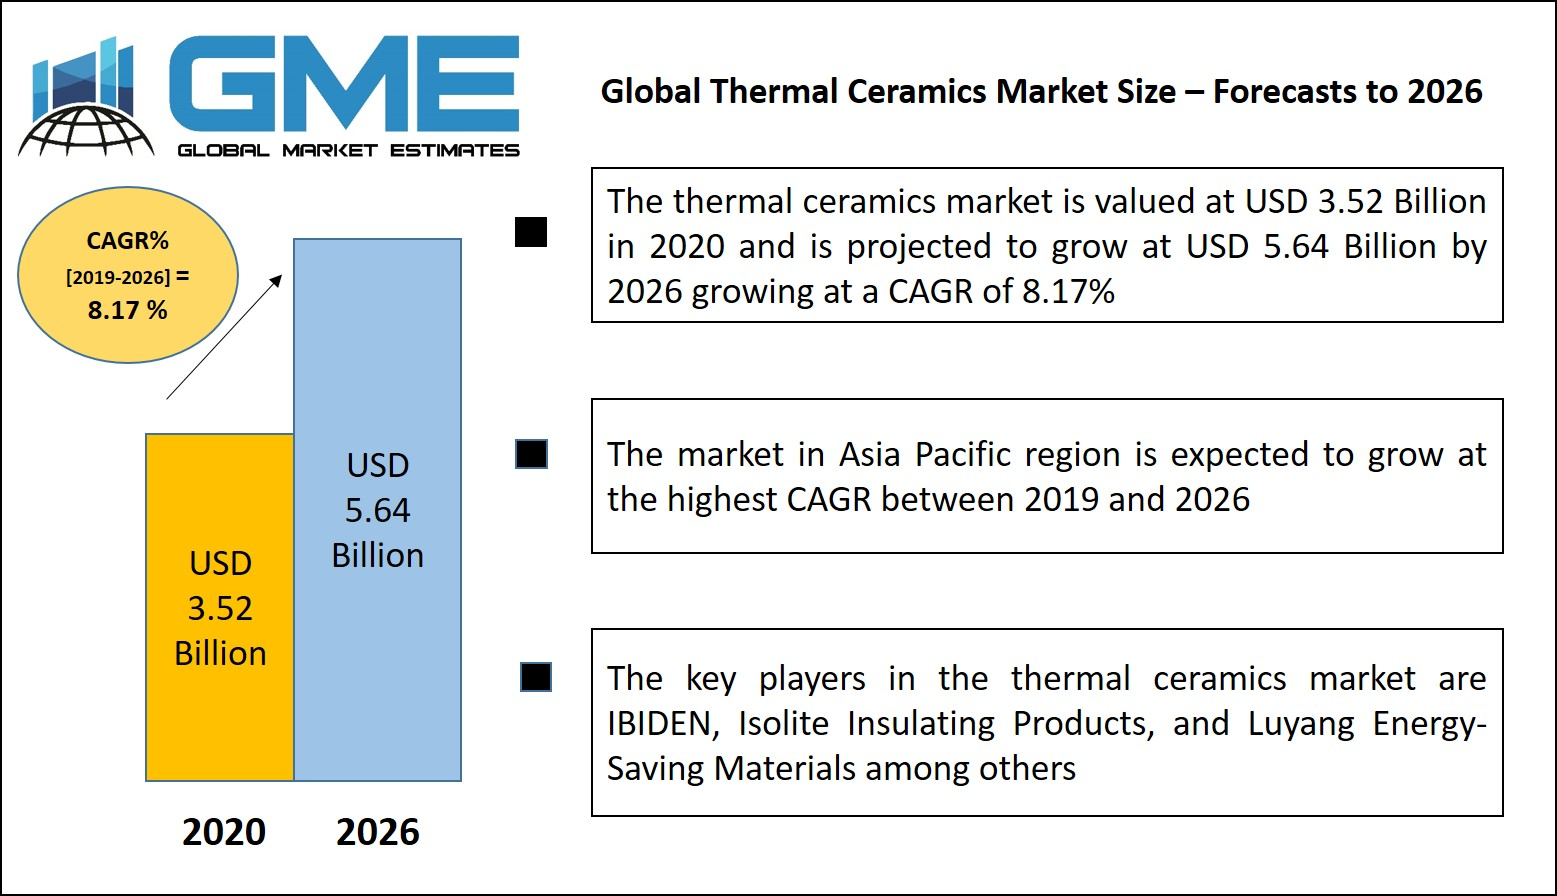 Global Thermal Ceramics Market Size – Forecasts to 2026